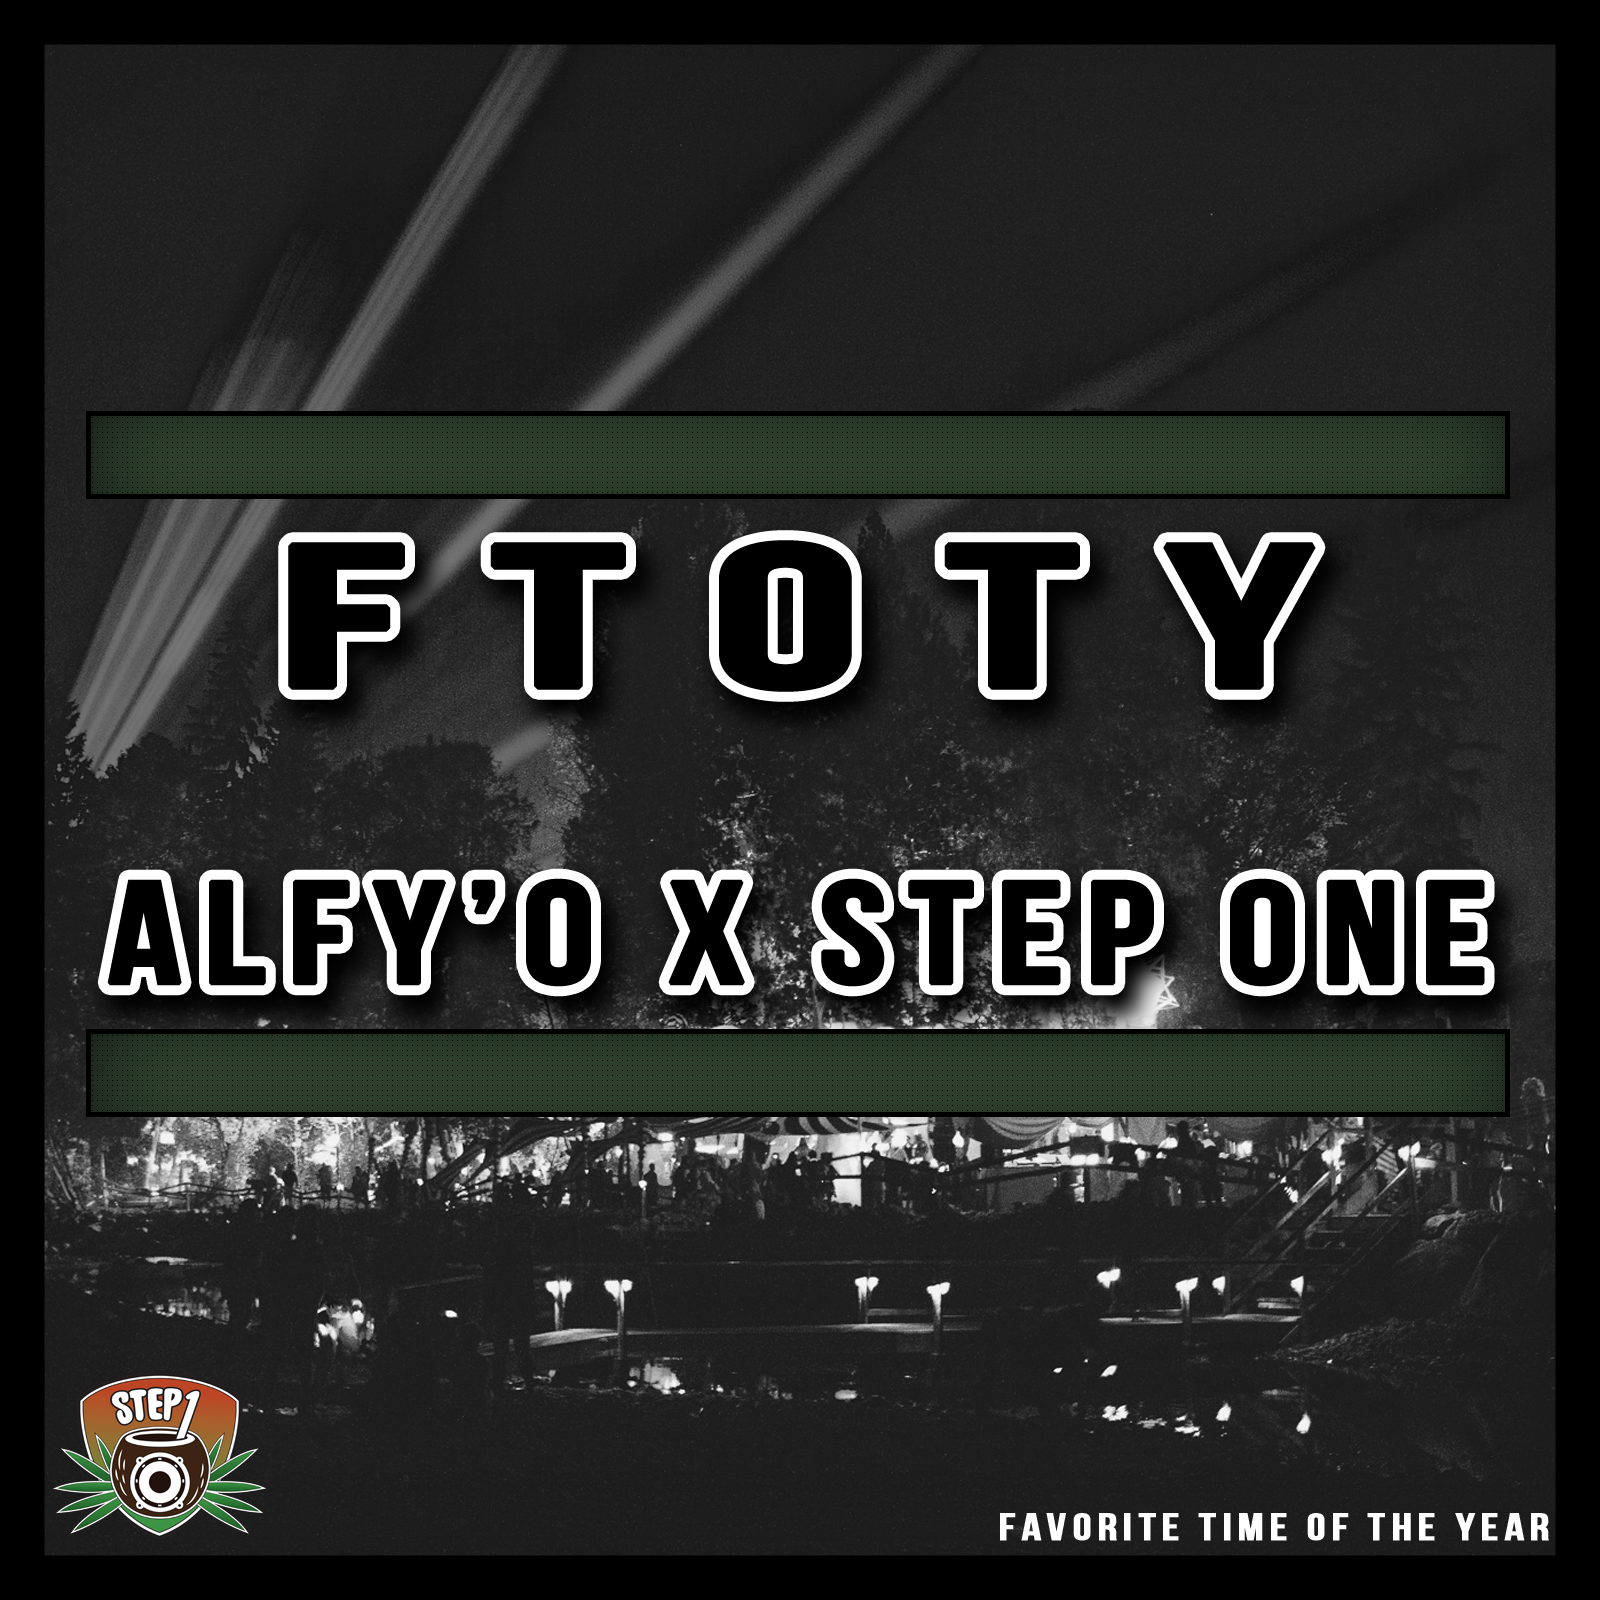 Step One - FTOTY ft. Alfy'O